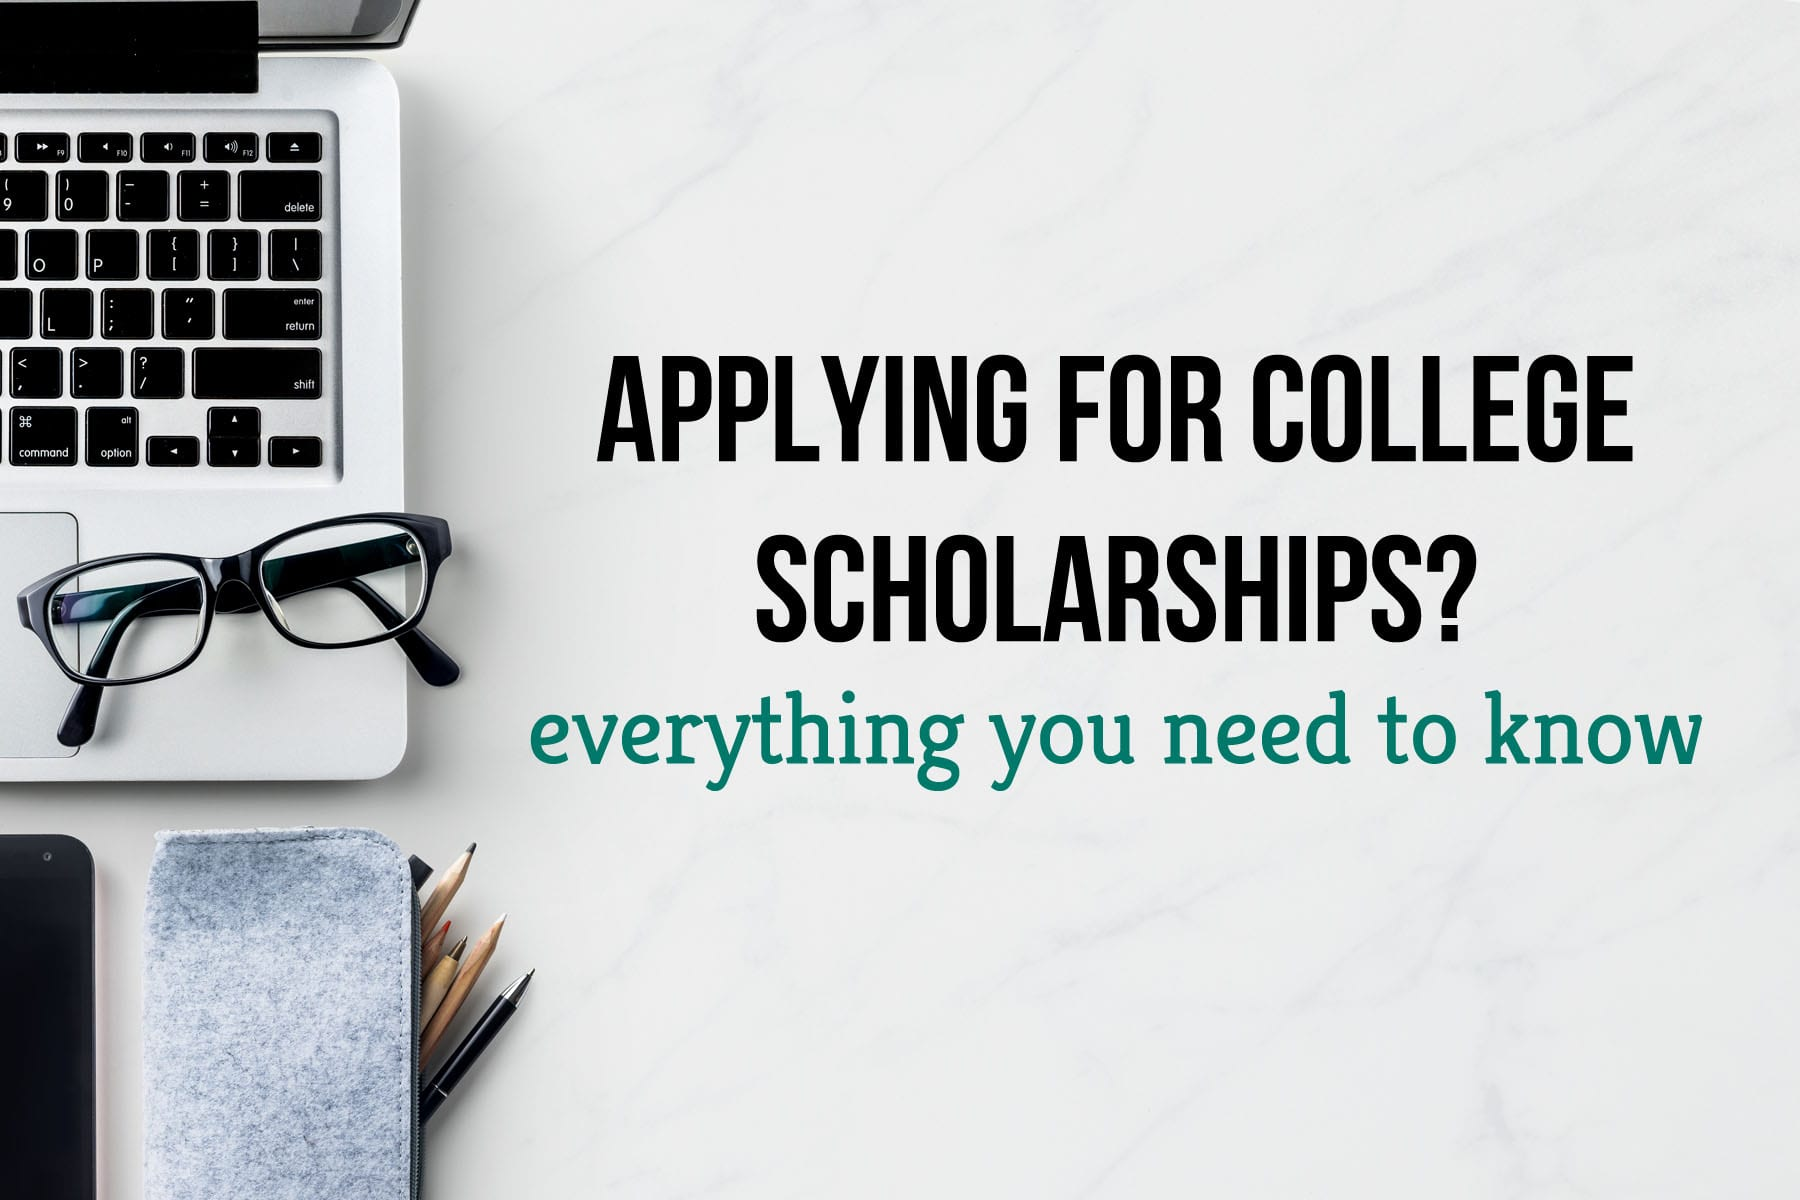 If you're feeling overwhelmed by the college scholarship application process, let this post guide you to putting your best foot forward!